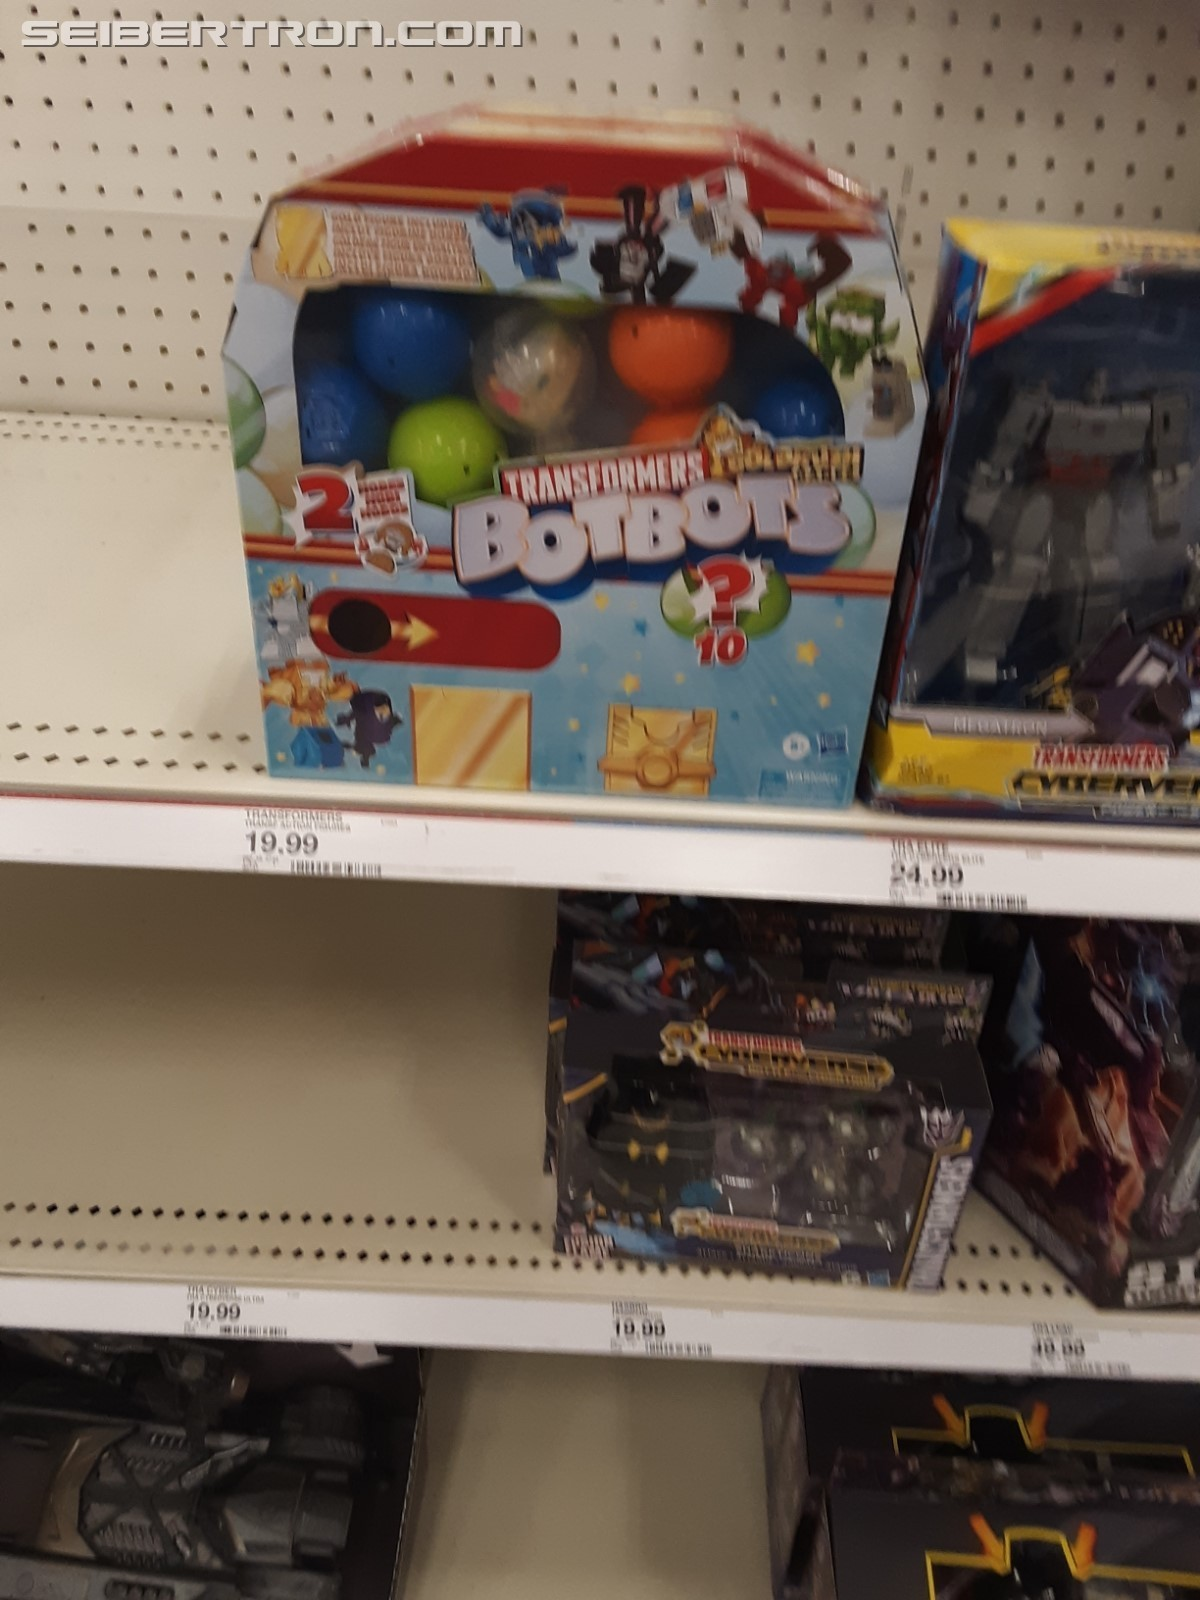 Transformers News: Transformers BotBots Series 4 Gumball and Claw Machine Boxes found at Target